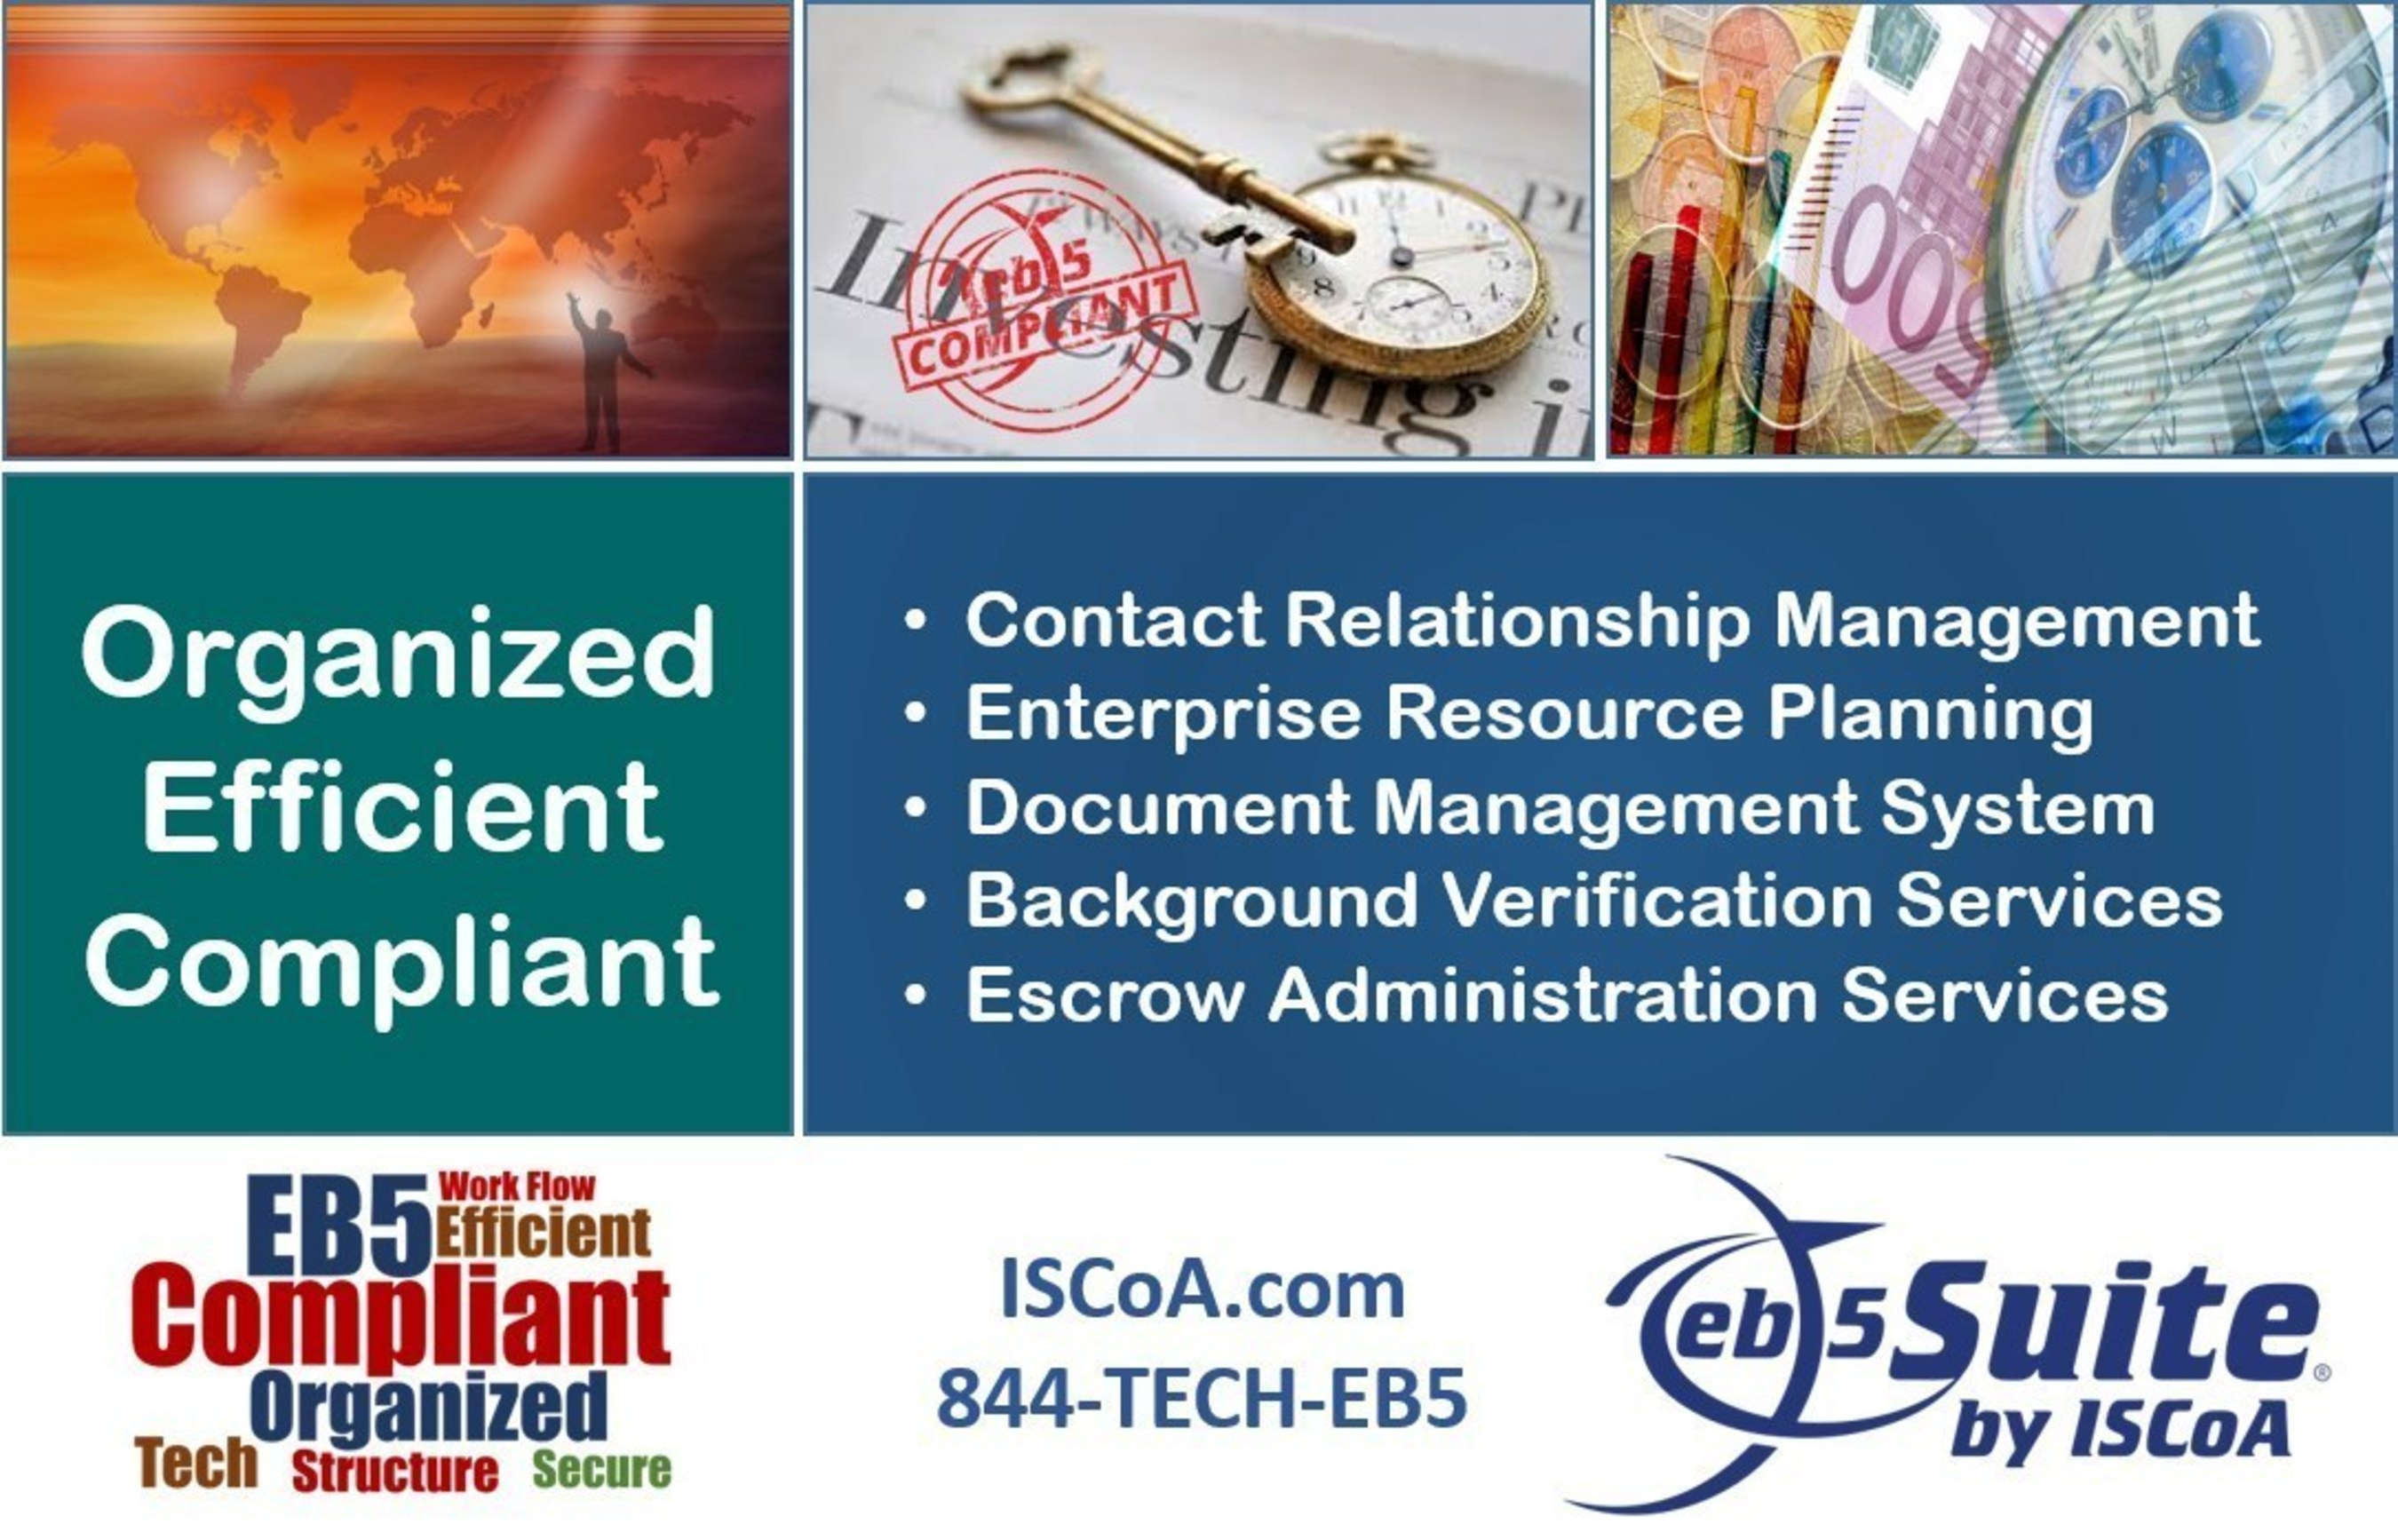 EB5 Regional Centers use EB5 Suite to organize investor materials and stay compliant with government regulations.